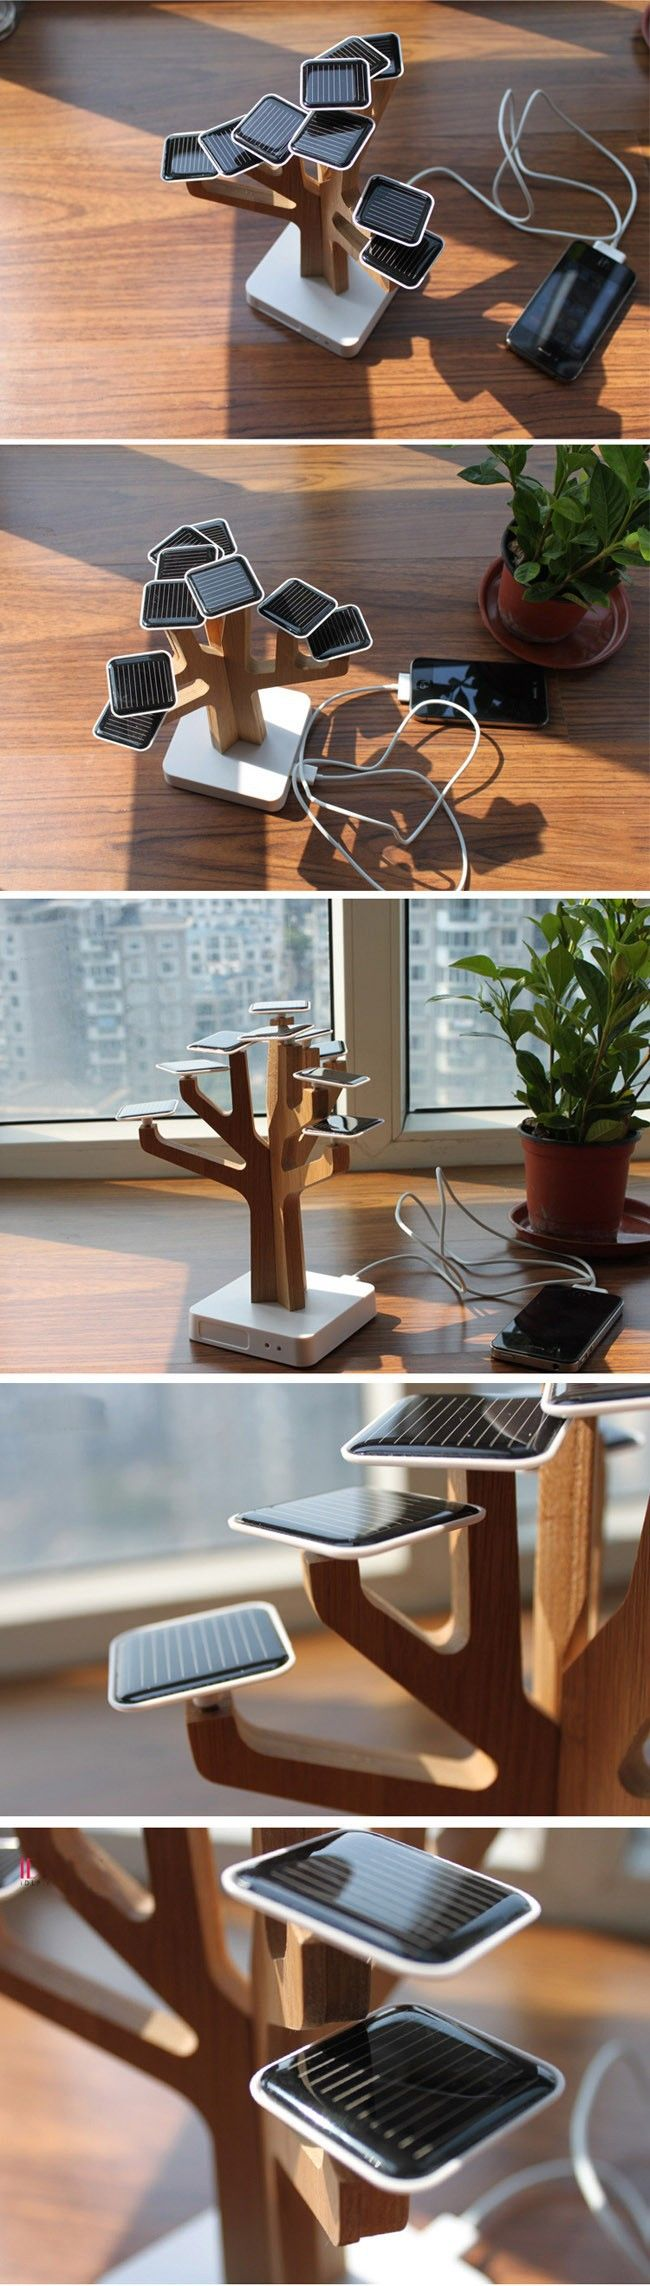 Suntree Solar Charger: Inspired by Nature | Deko Idee für Dein Home Office | Dekoration fürs Arbeiten zuhause